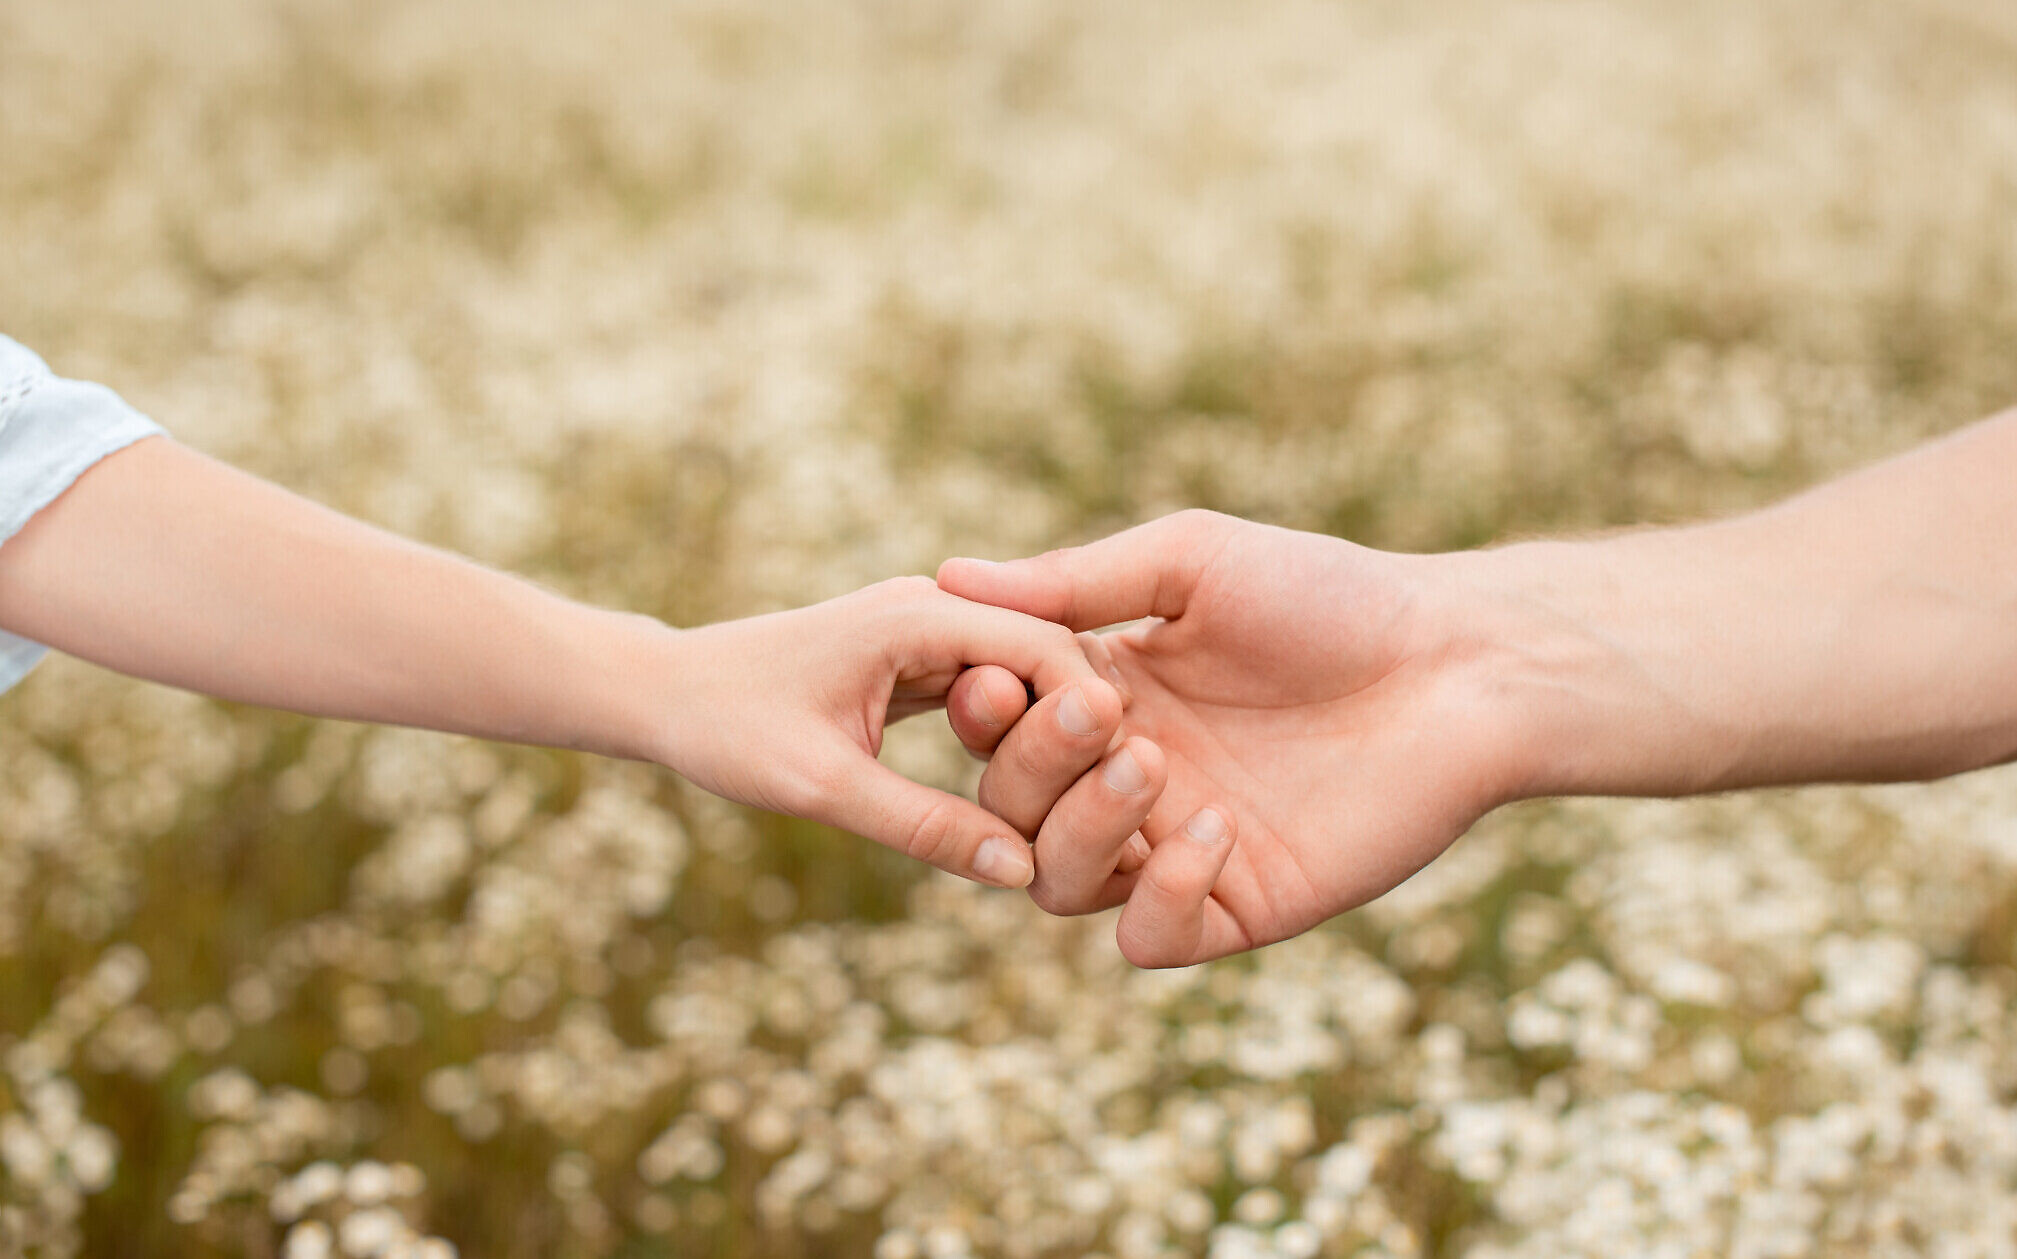 Holding Hands Can Help Reduce A Loved One S Pain Study Shows The Times Of Israel